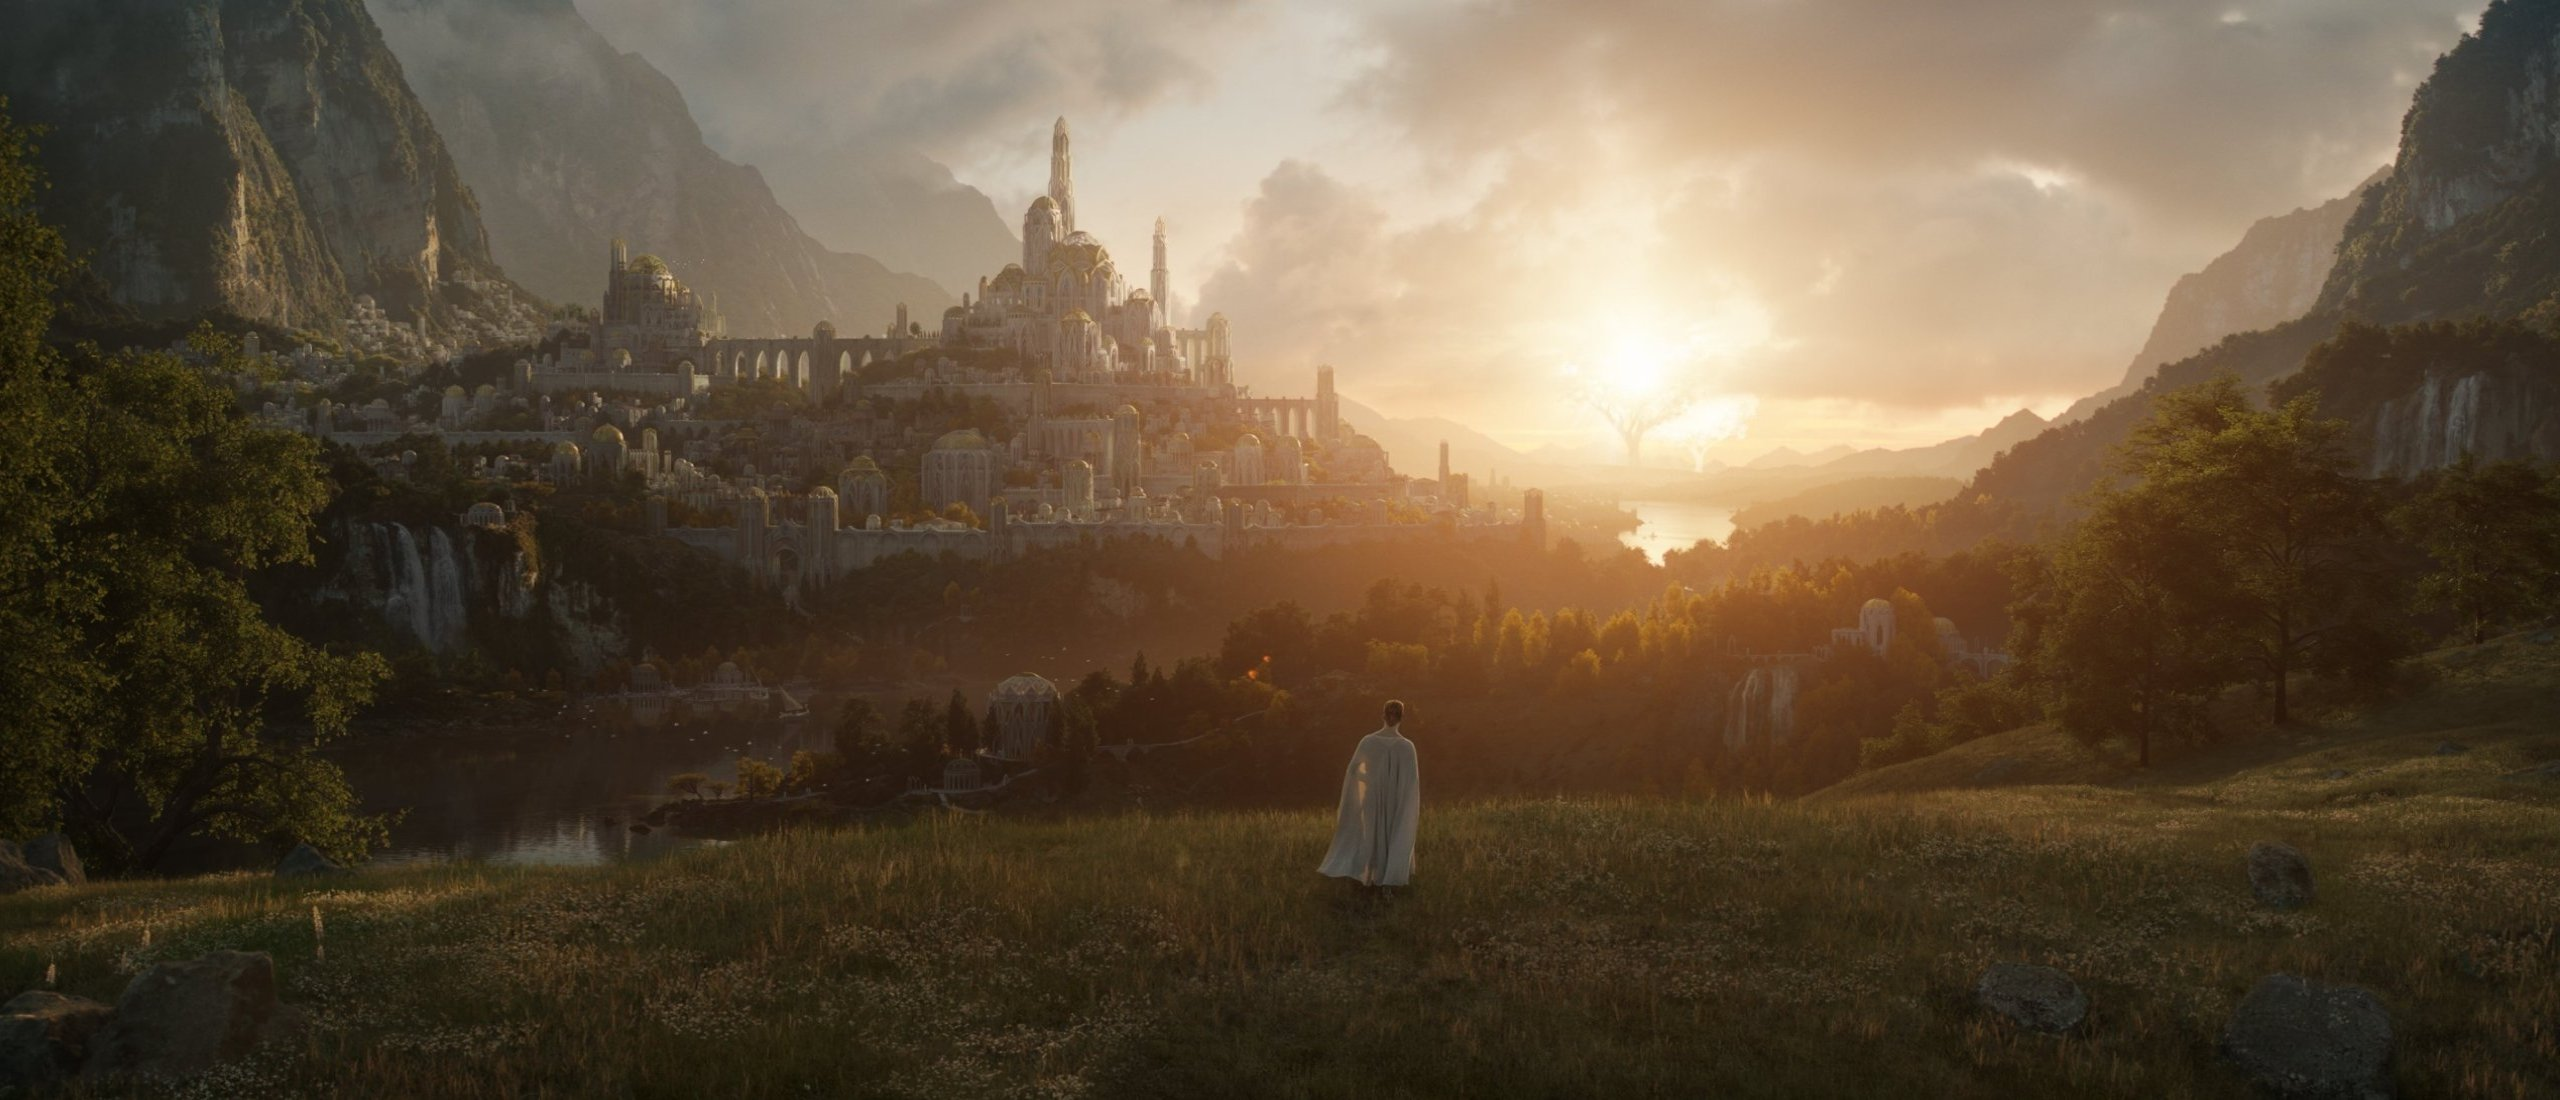 """A still shot from Amazon's """"The Lord of the Rings"""" TV series."""